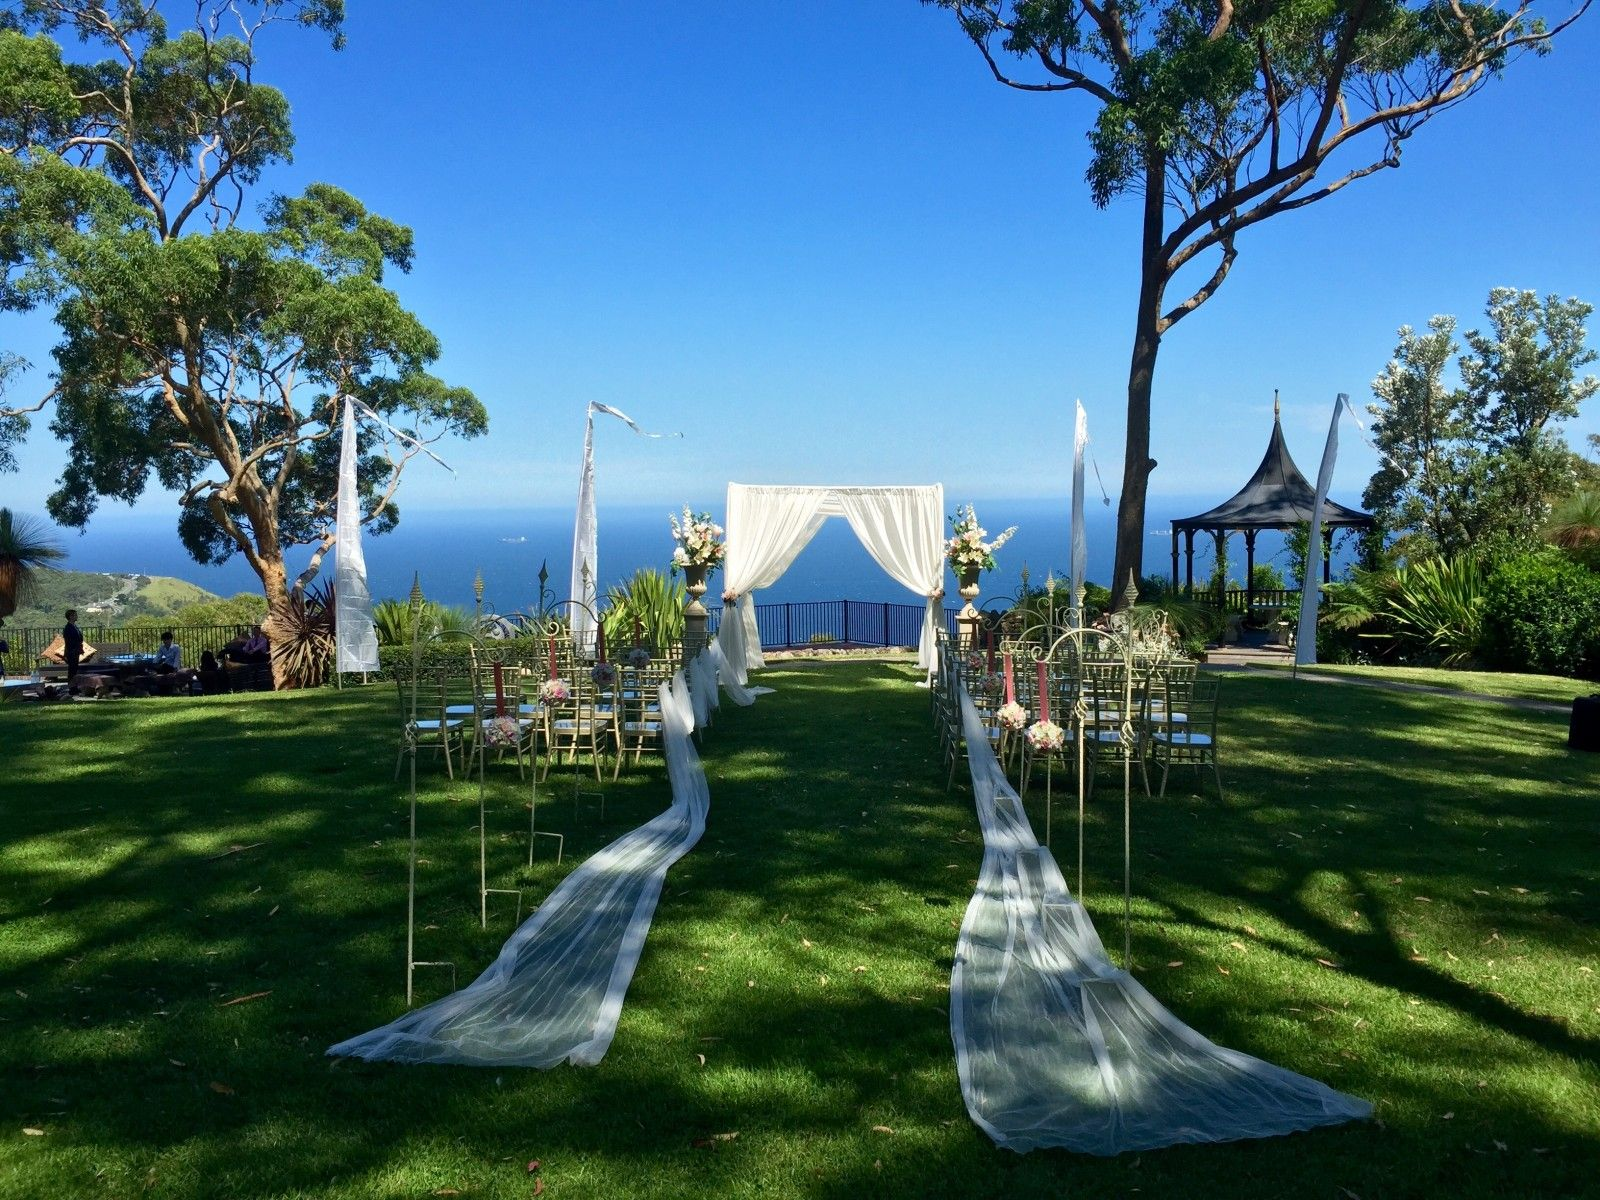 Wedding reception venues adelaide sa south australia - Outdoor Wedding With An Amazing View Check Out This Beautiful Location Surrounded By Nature And The Ocean Create Unforgettable Memories At This Ideal